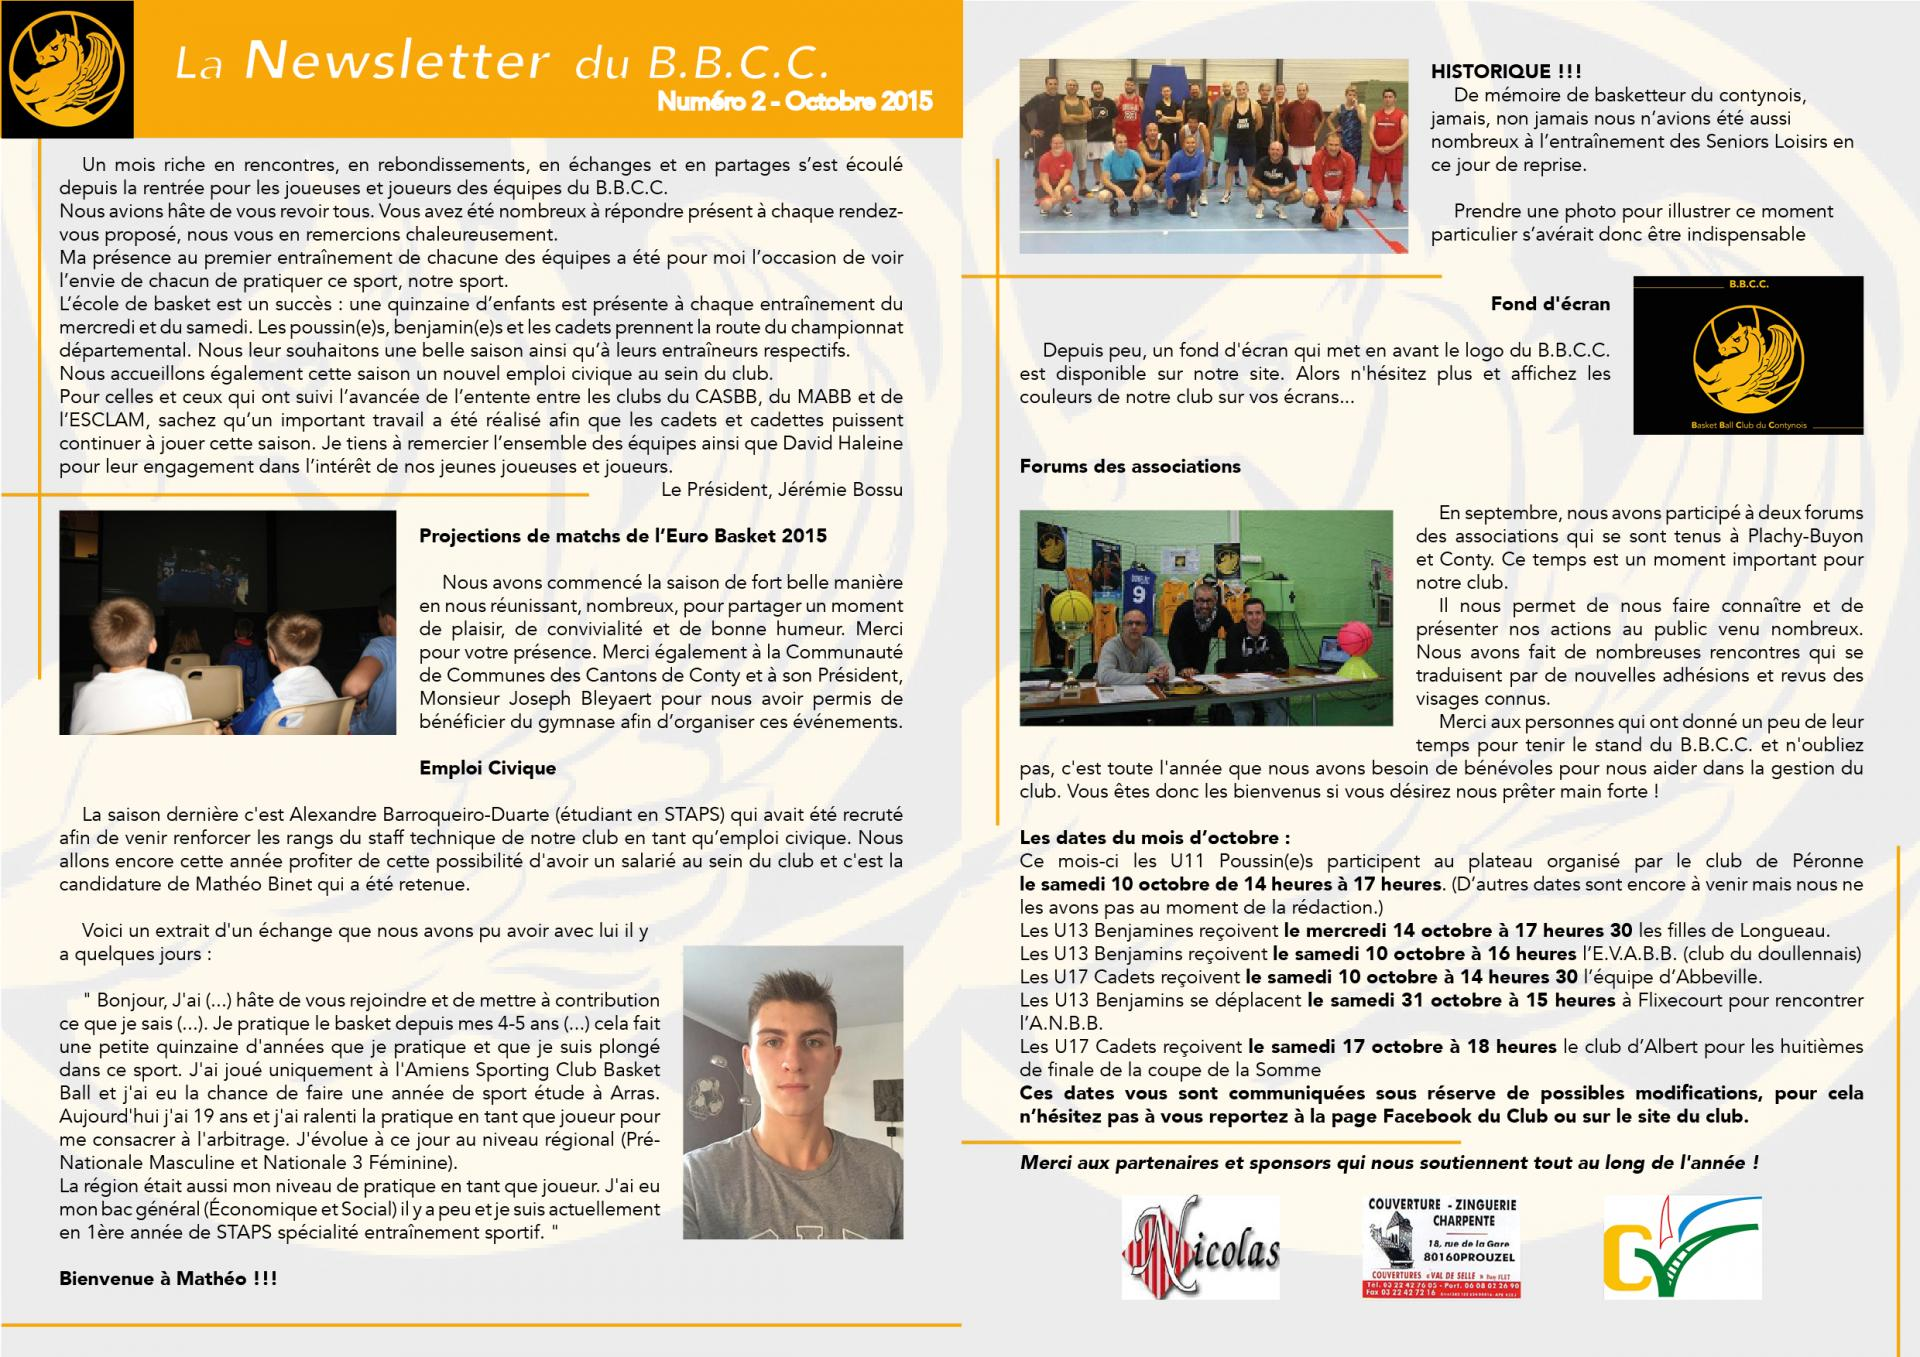 Newsletter #2 - octobre 2015